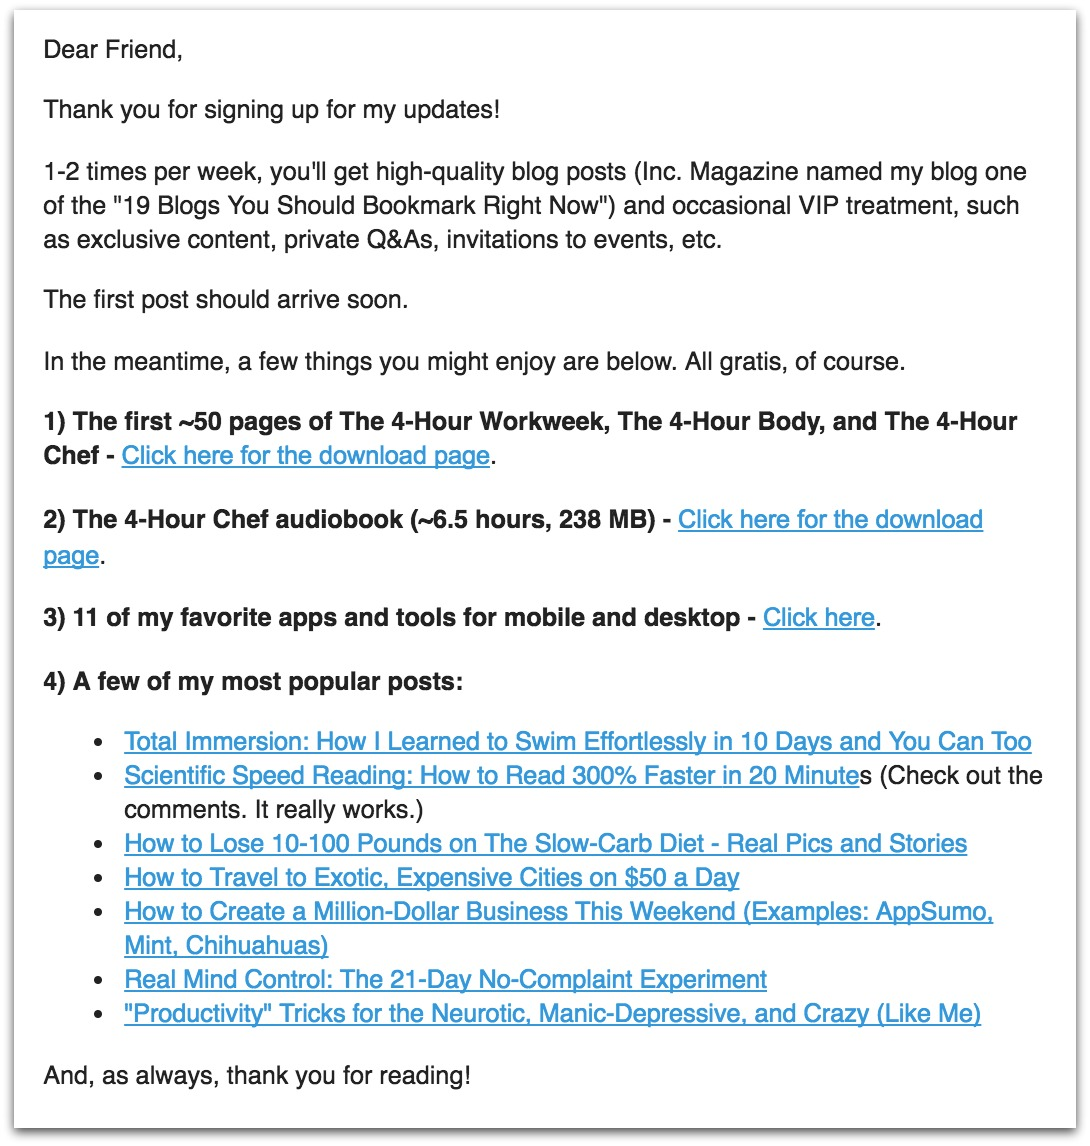 Screenshot of a welcome email sent by Tim Ferriss